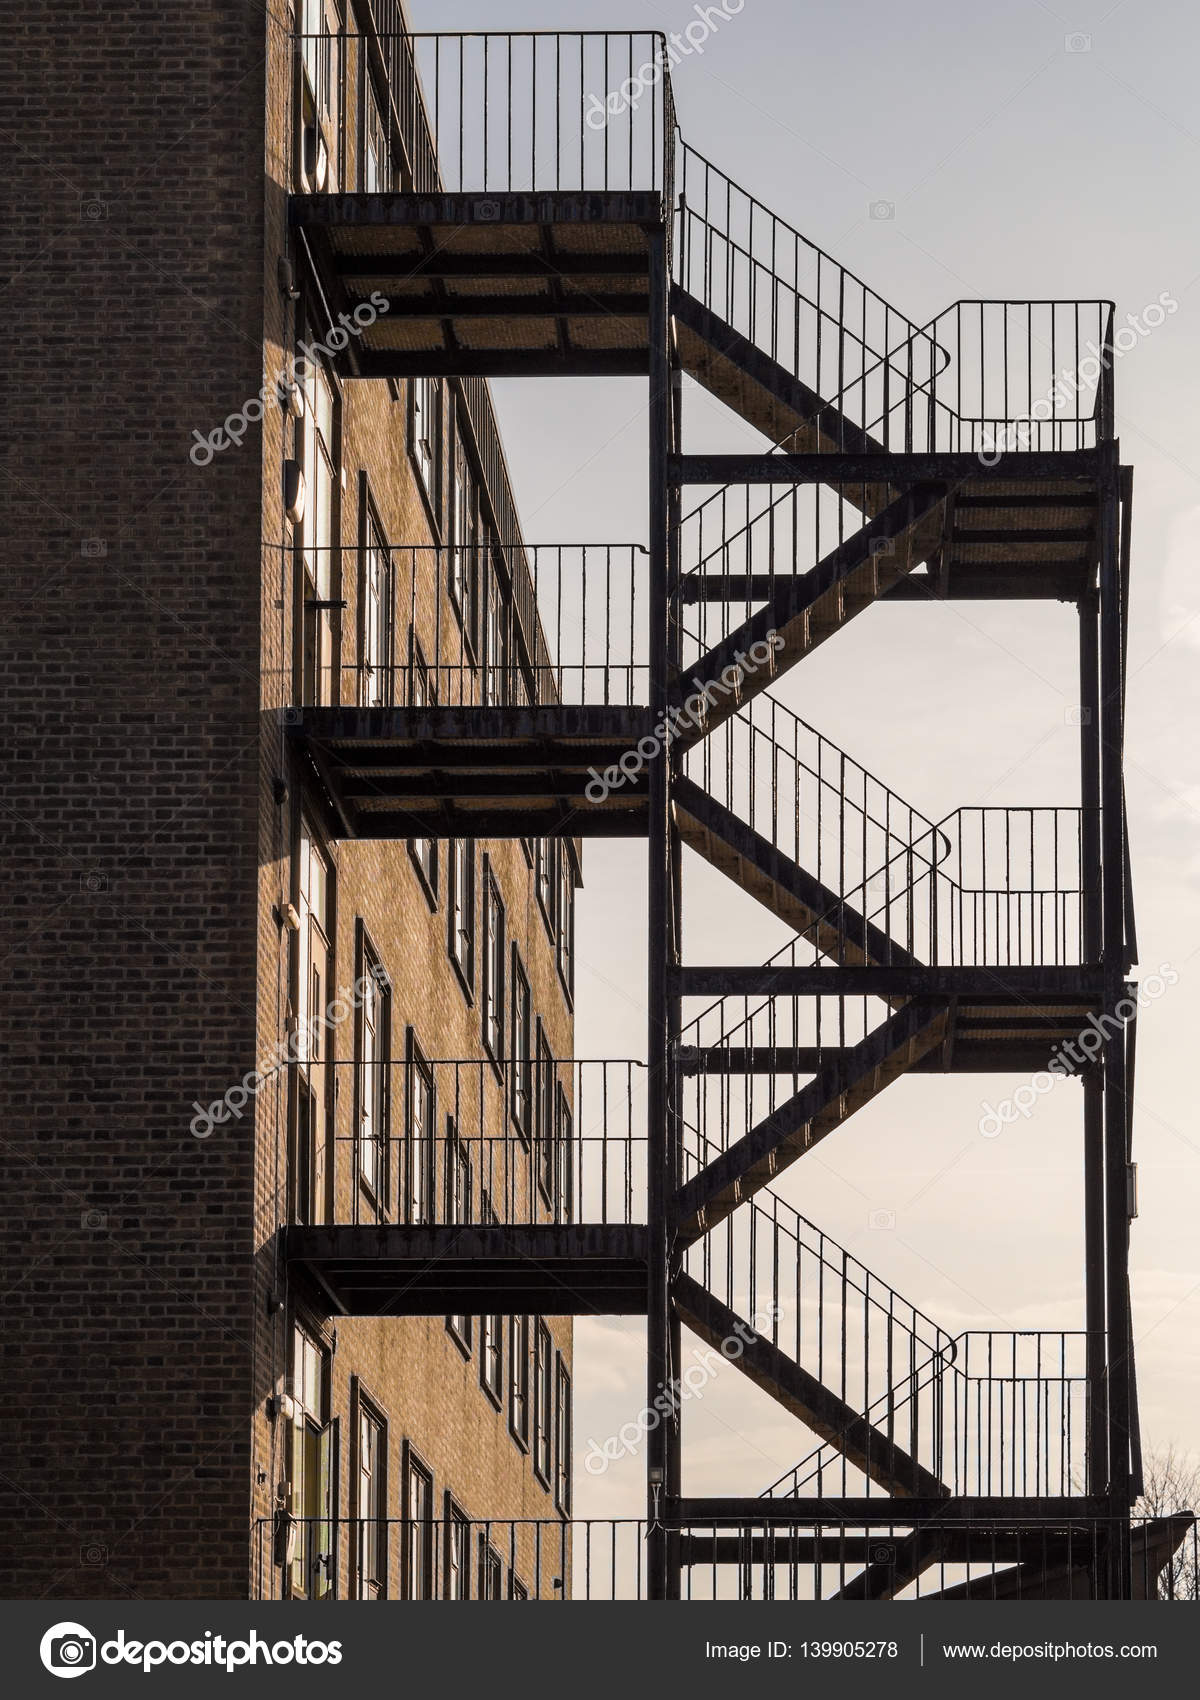 External Fire Escape Silhouette. Fire Escape Is Iron With Five Flights Of  Steps And Handrails. Building Is Generic Square Office Style Building In  Brick.